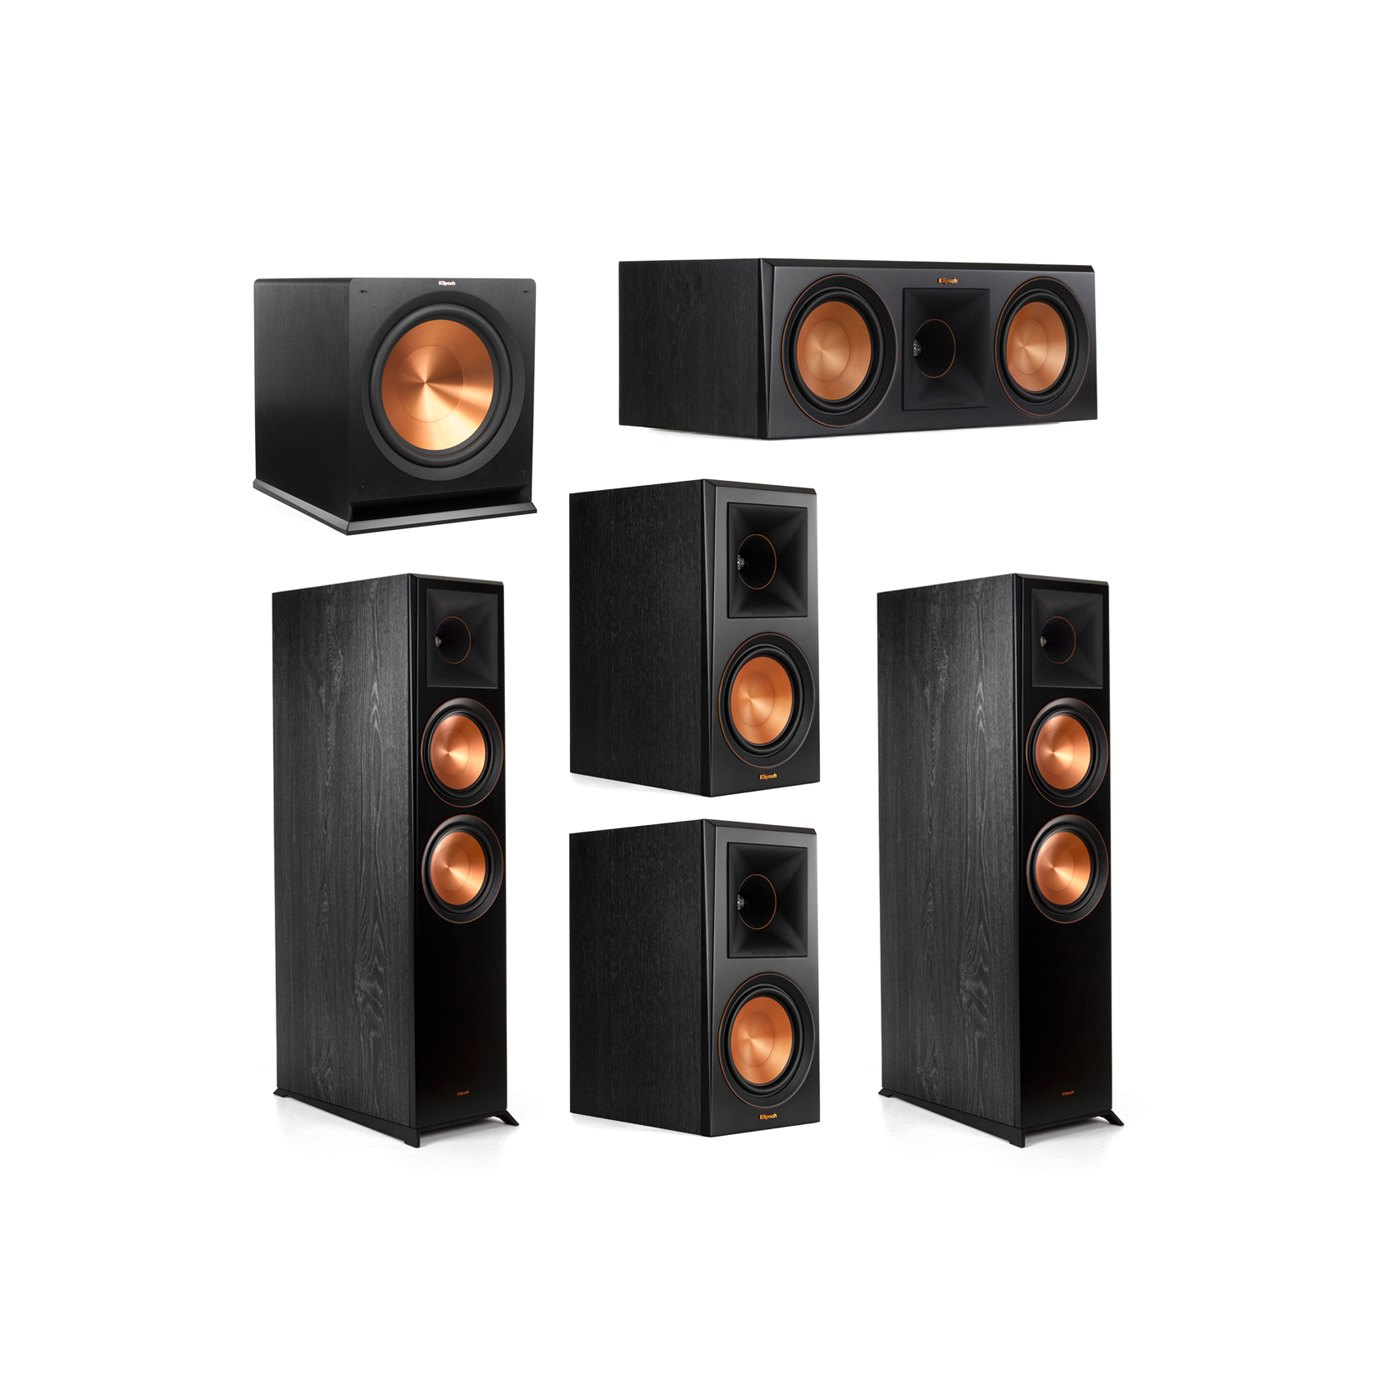 Klipsch 5.1.2 System - 2 RP-8060FA Dolby Atmos Speakers, 1 RP-600C, 2 RP-600M Speakers, 1 R-115SW